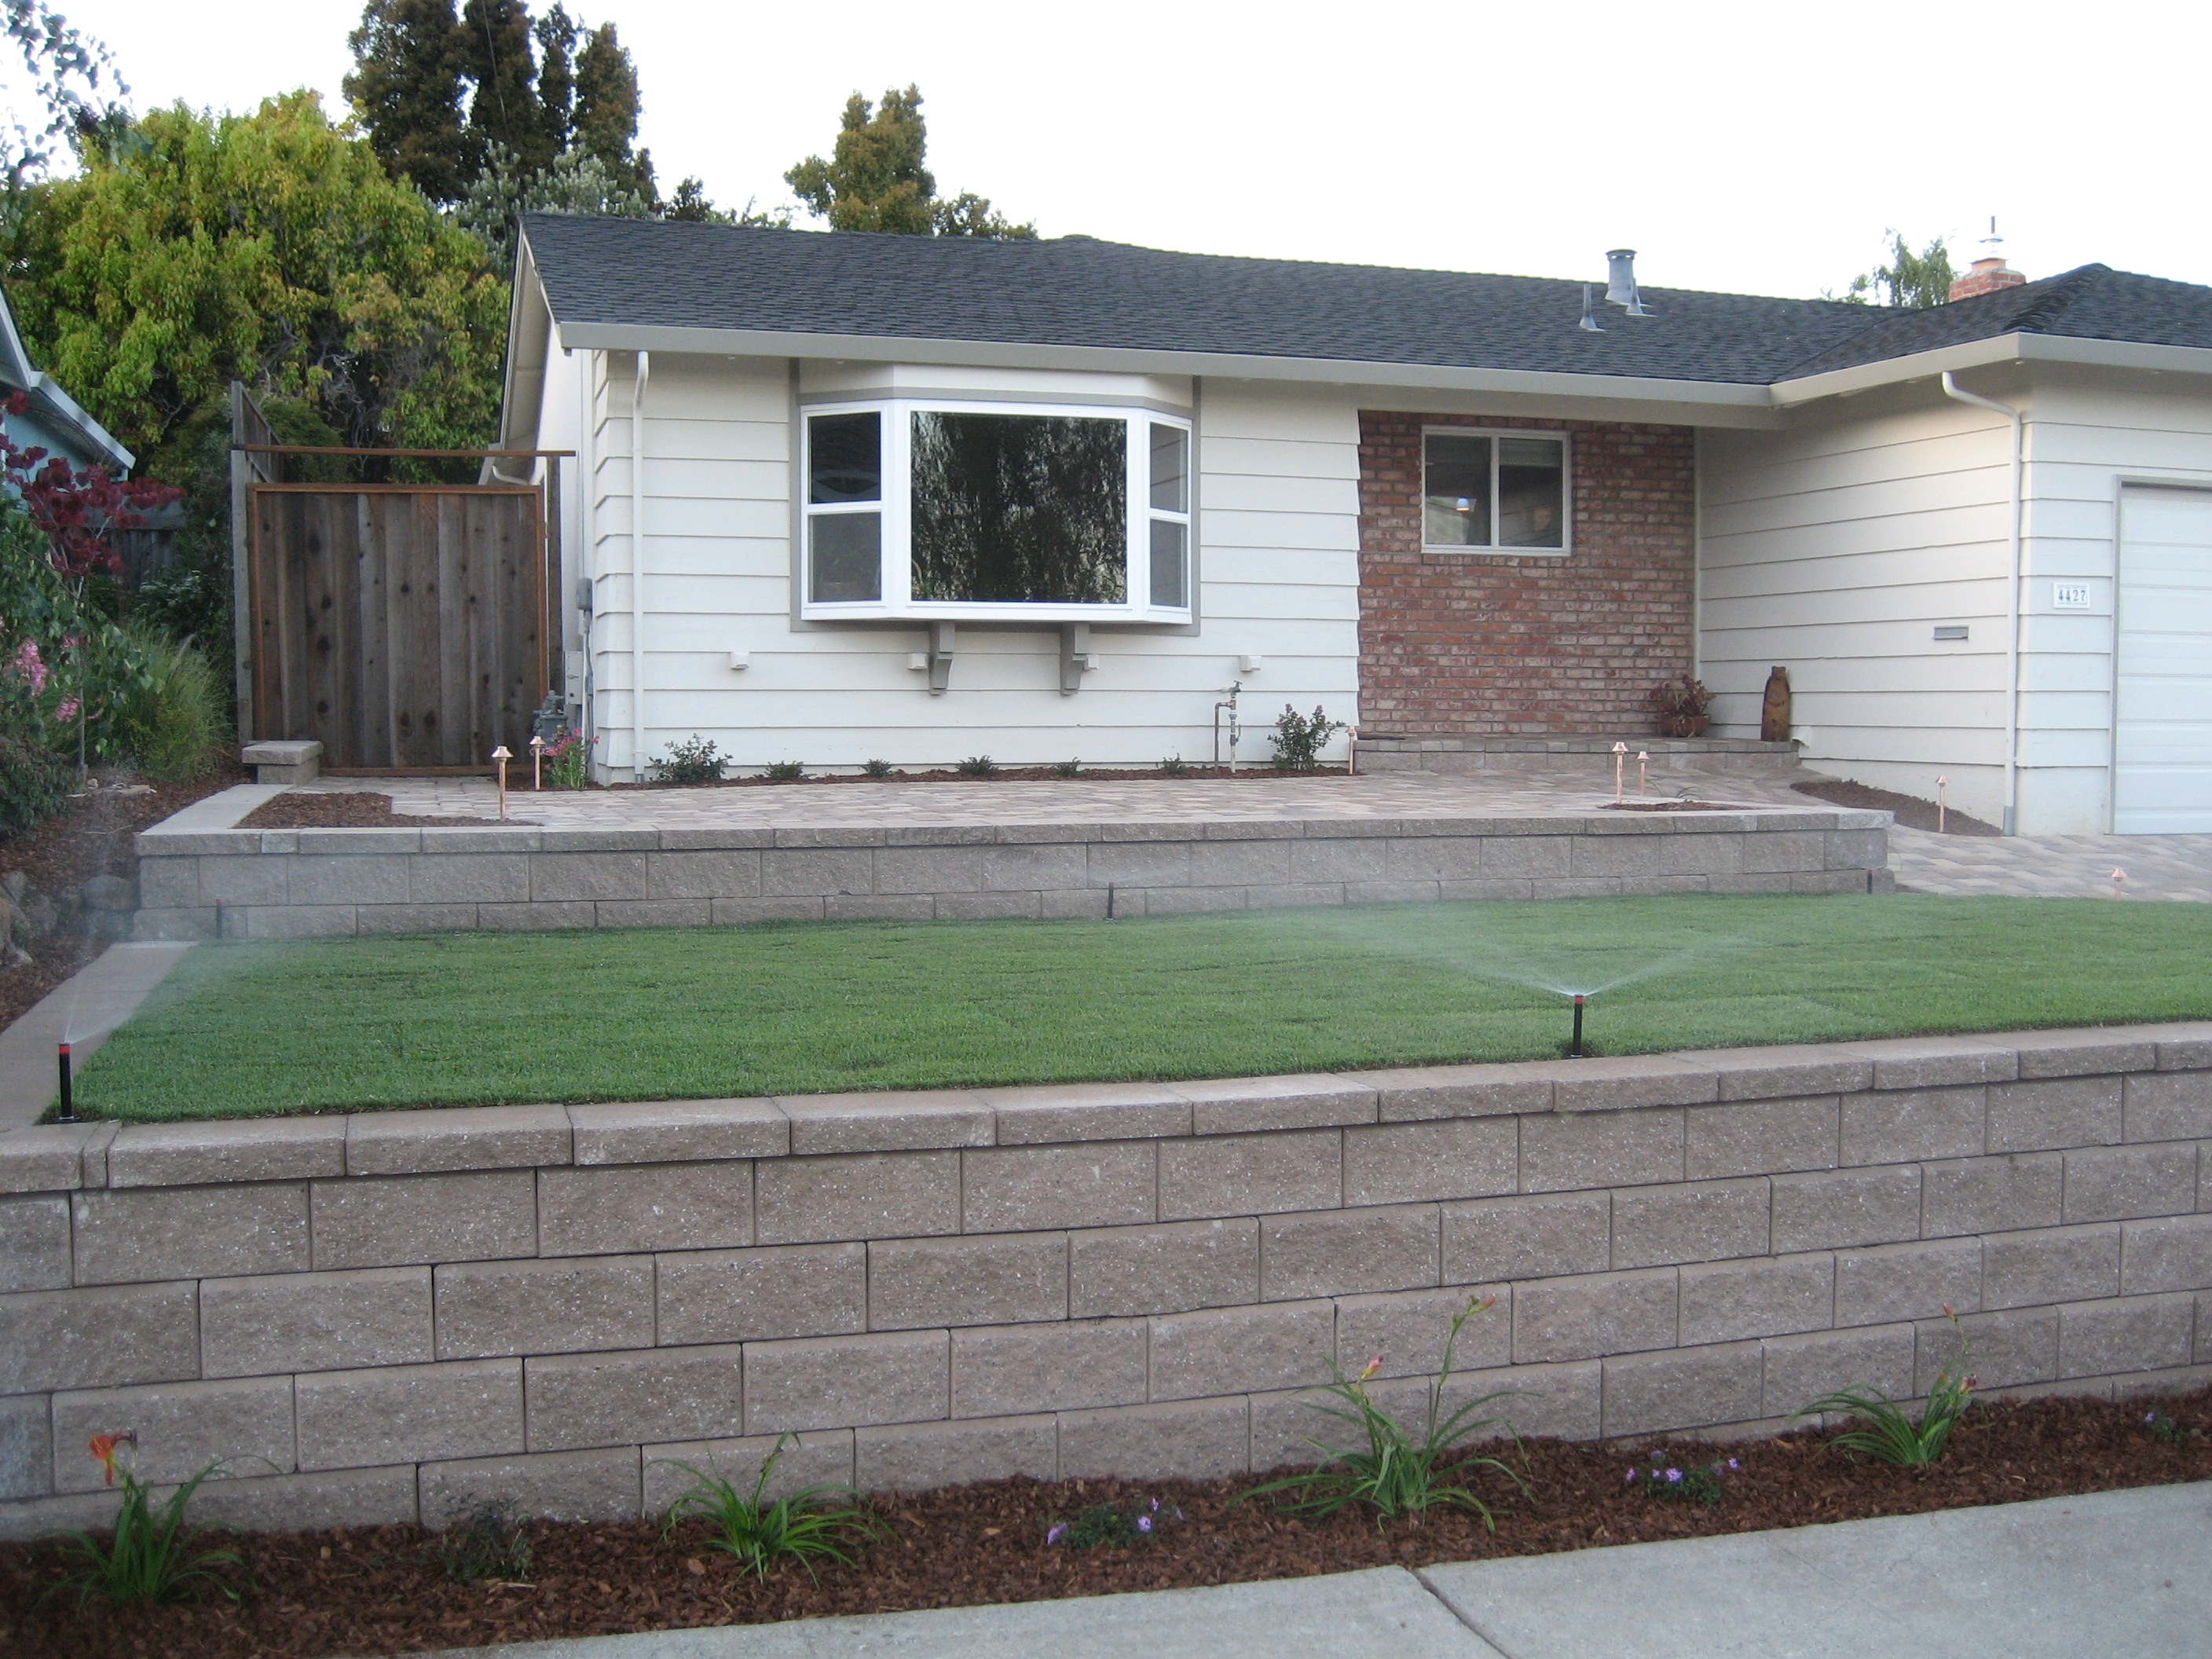 Sprinklers and Sod